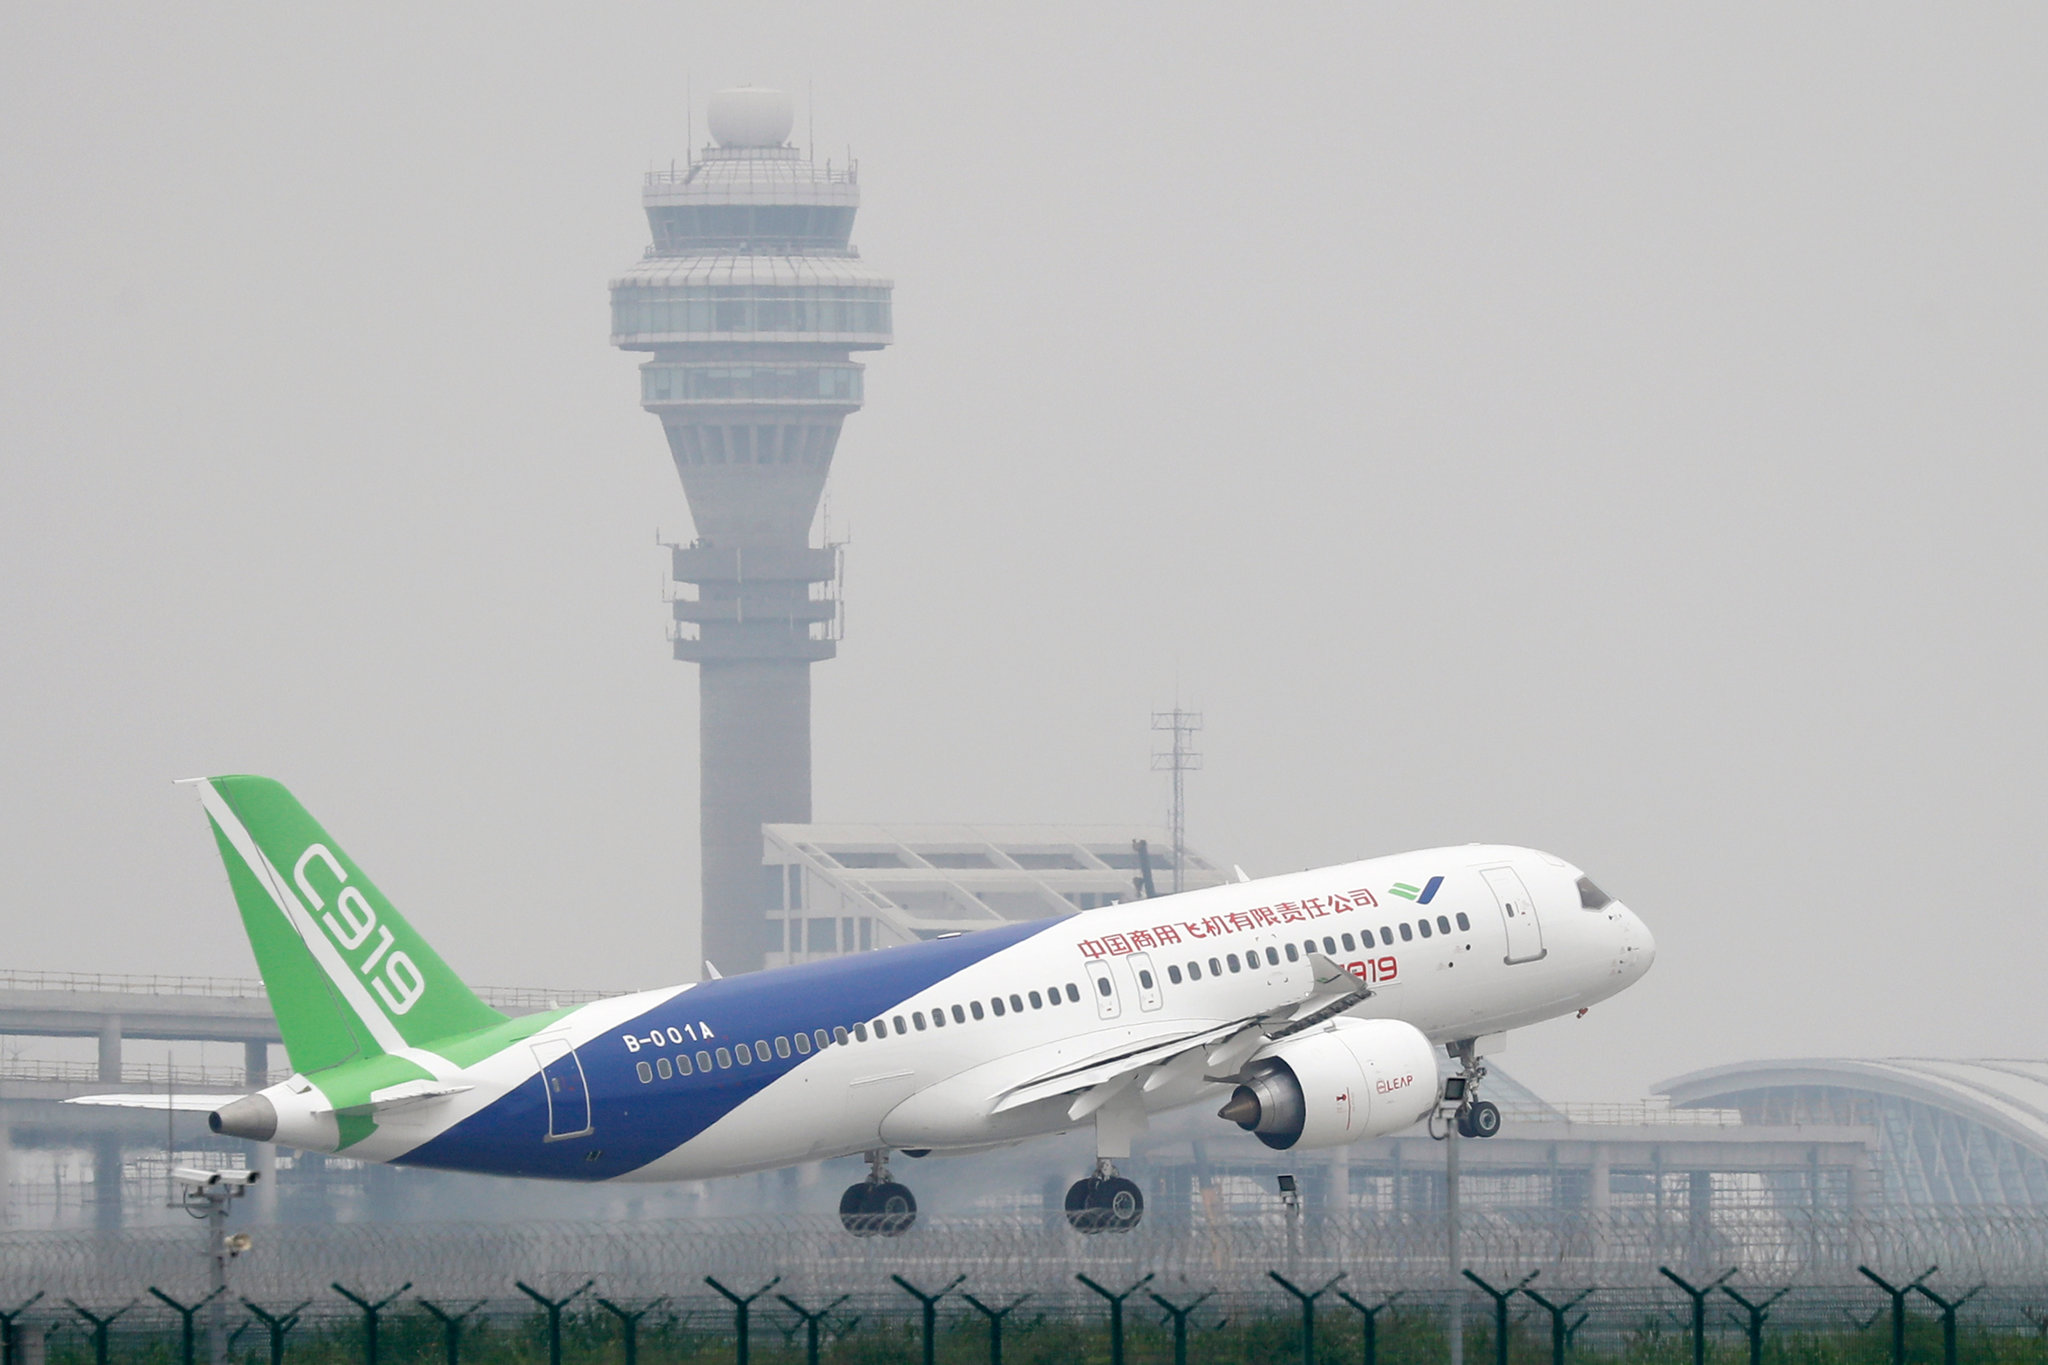 COMAC C919: Chinese-made Passenger Jet Takes Maiden Test Flight